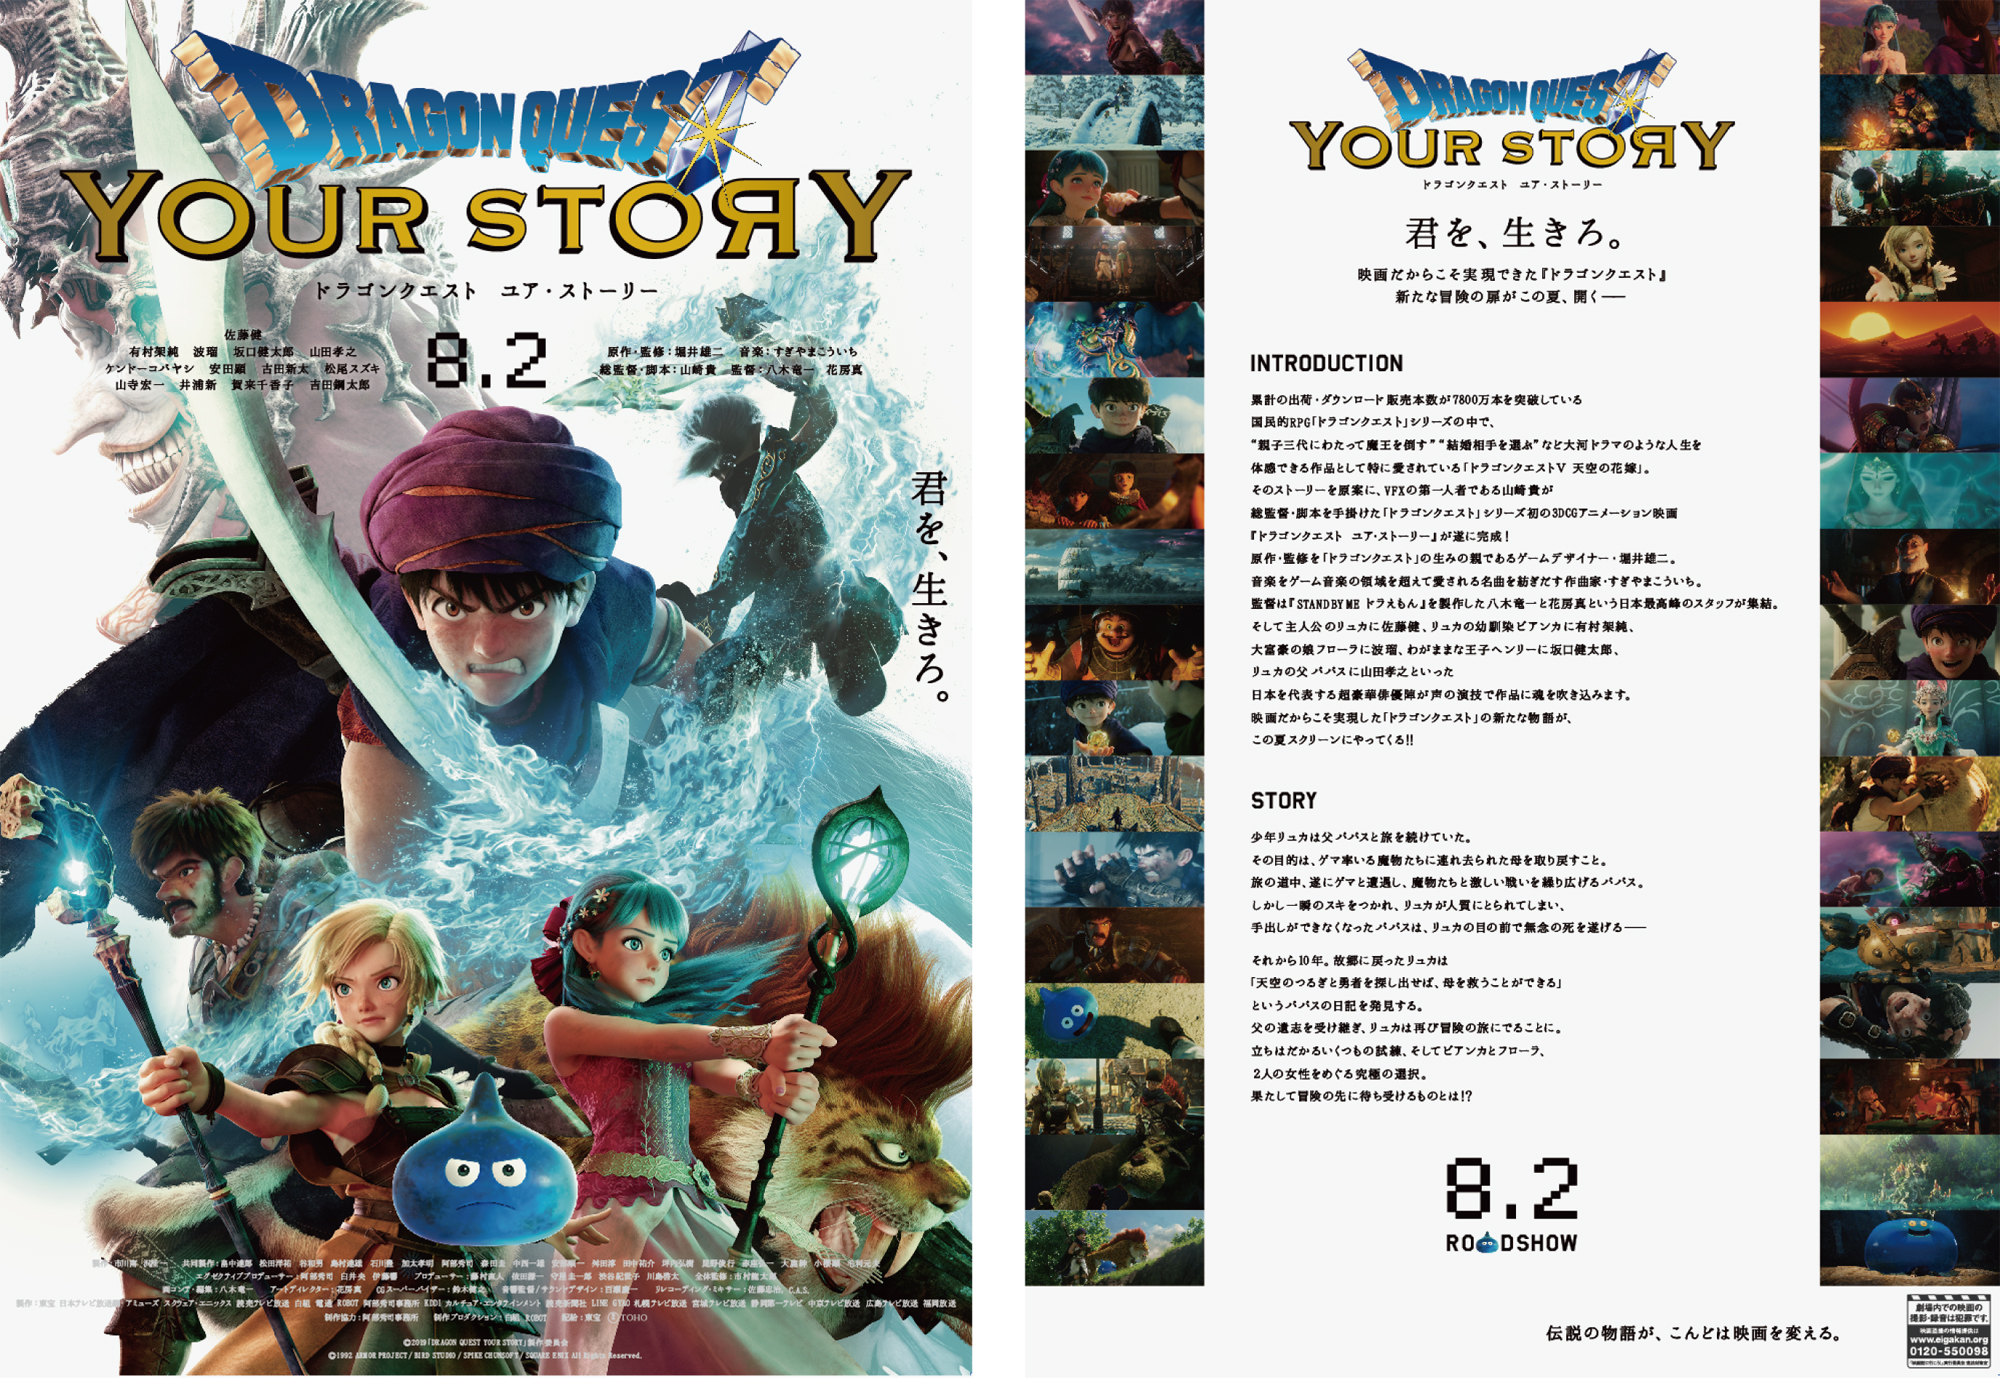 Dragon Quest Your Story Poster Flyer Mr Design